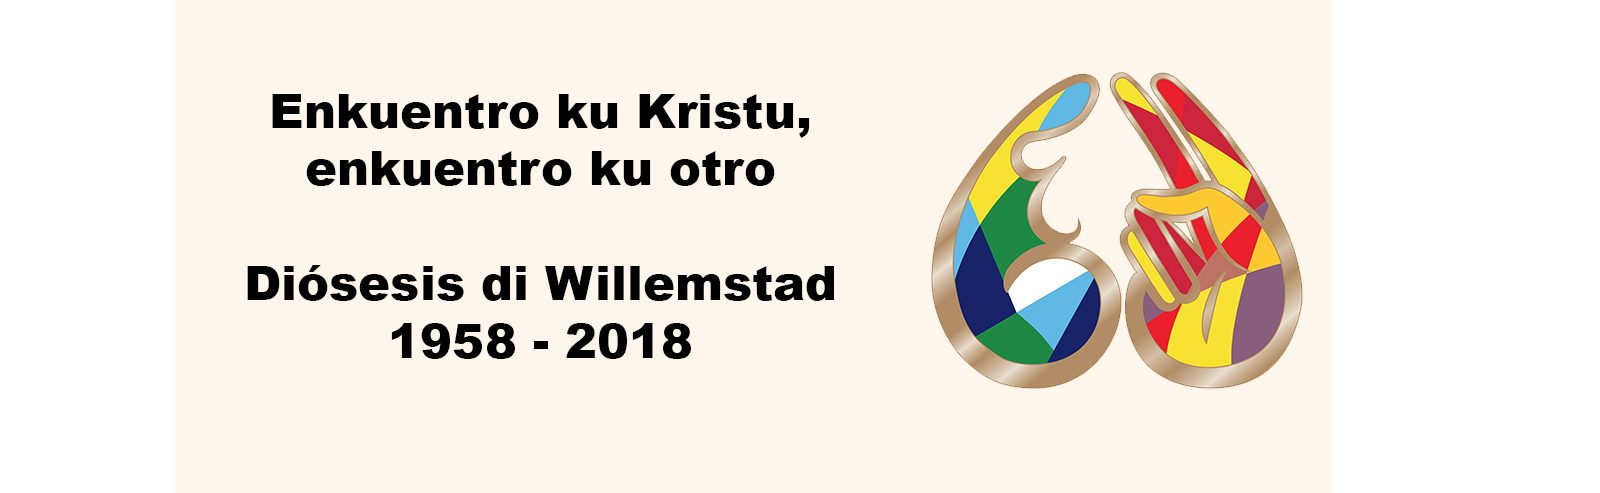 Diocese of Willemstad 1958-2018